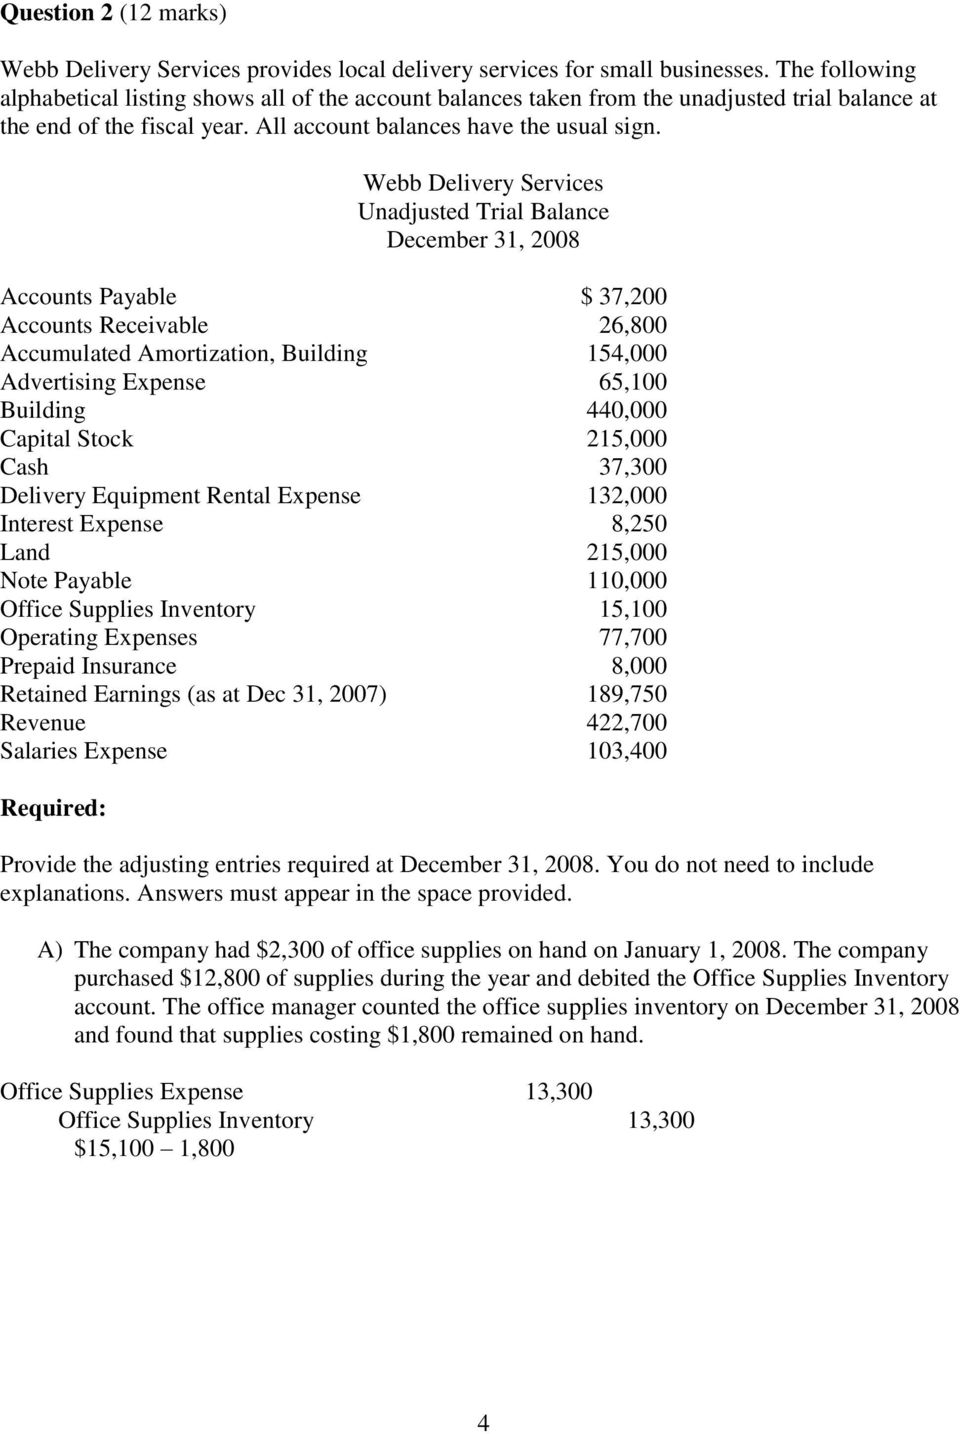 Webb Delivery Services Unadjusted Trial Balance December 31, 2008 Accounts Payable $ 37,200 Accounts Receivable 26,800 Accumulated Amortization, Building 154,000 Advertising Expense 65,100 Building